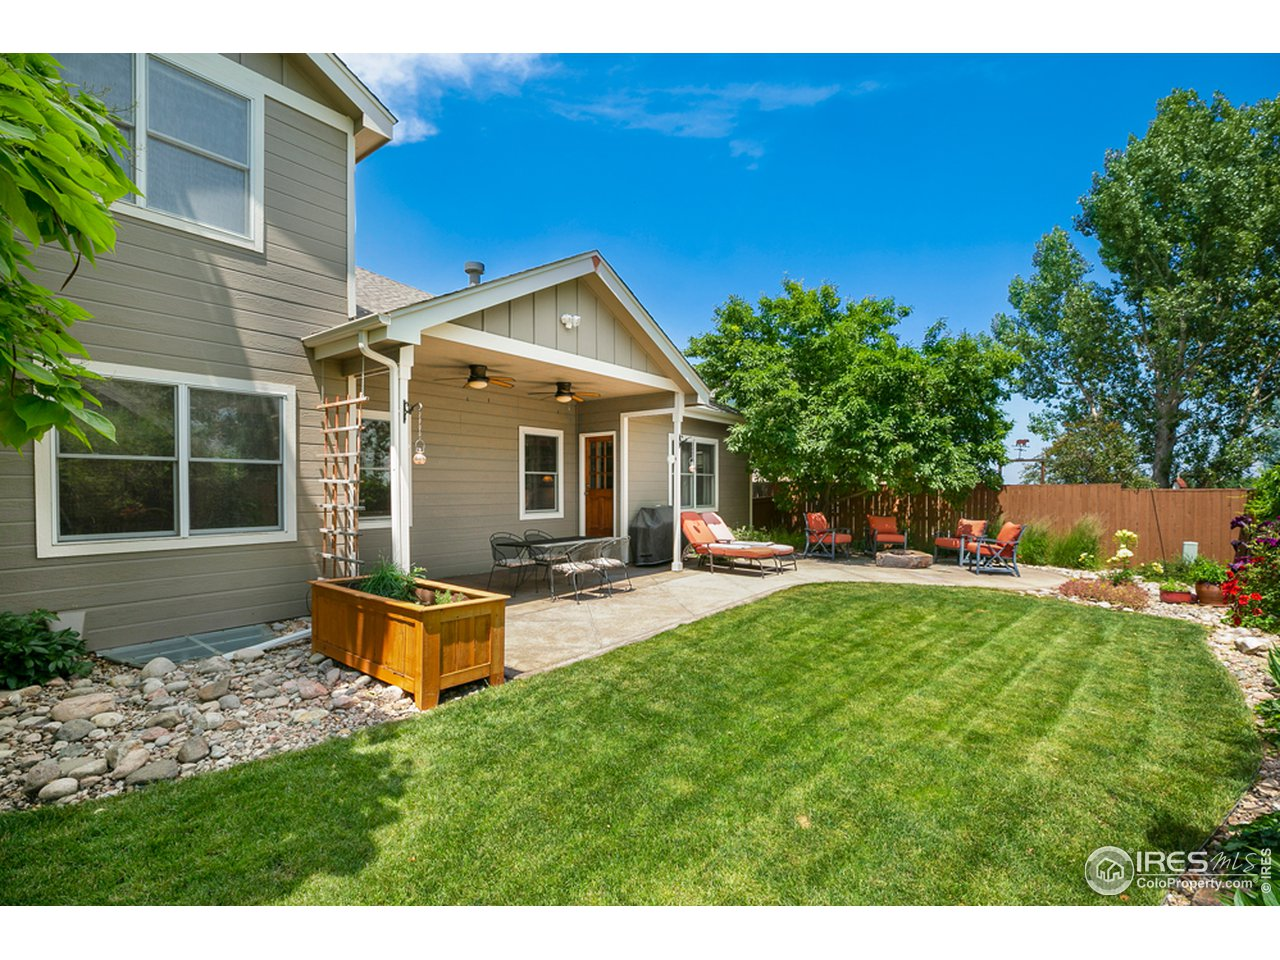 Lovely manicured mature landscaping throughout entire property